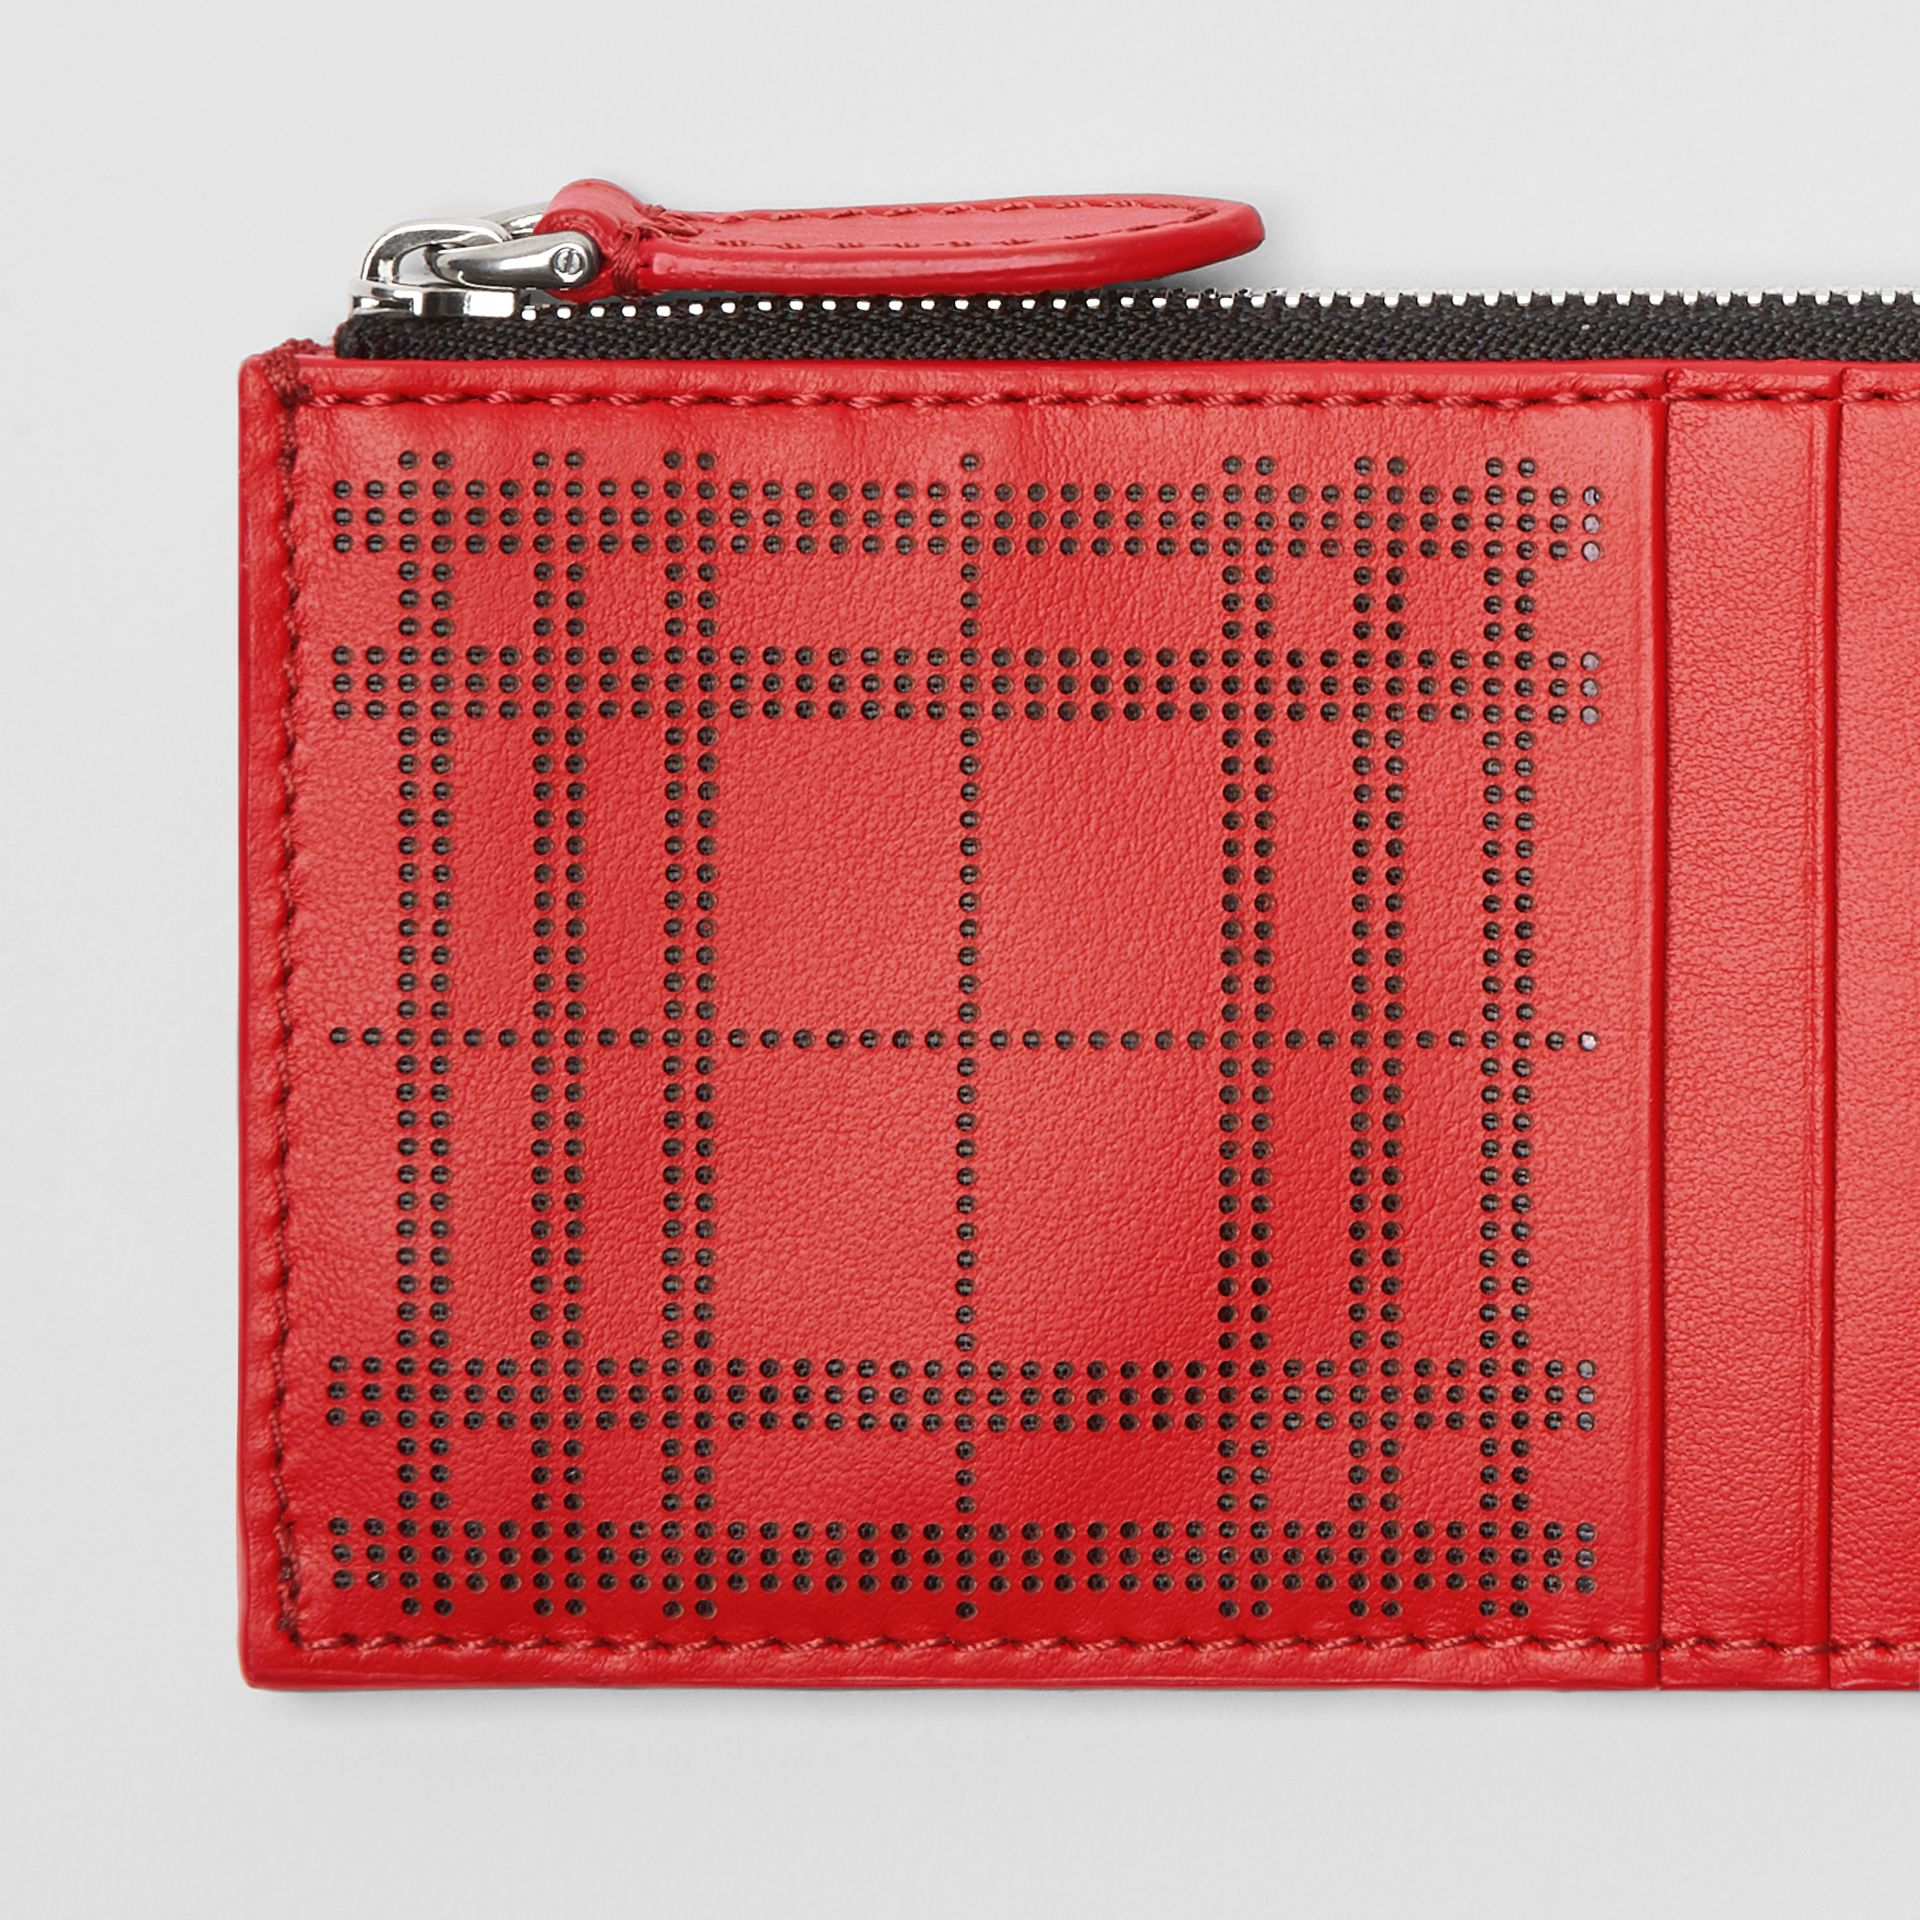 Porte-cartes zippé en cuir à motif check perforé (Rouge Rouille) - Homme | Burberry - photo de la galerie 1